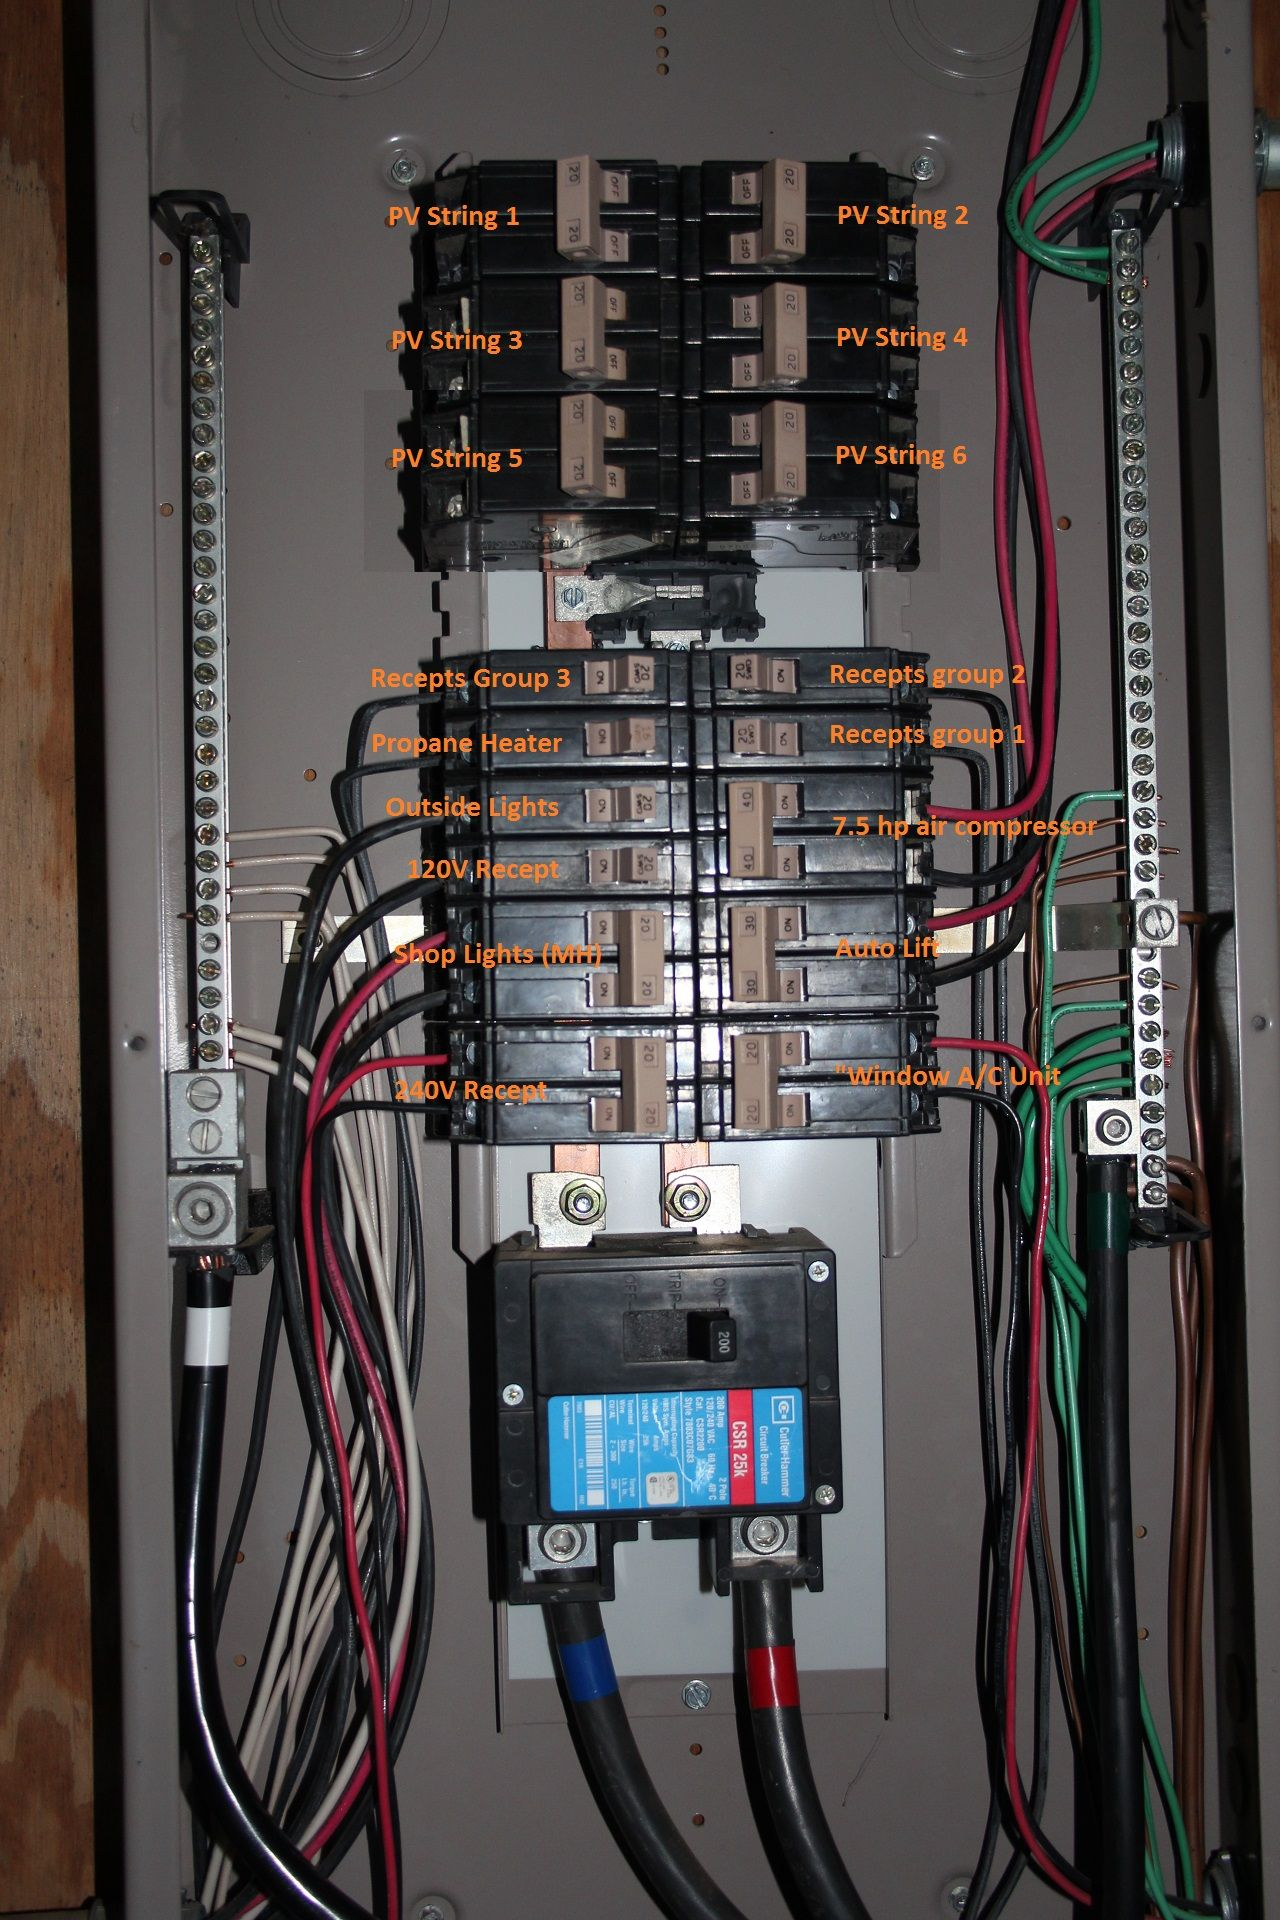 120% bus bar rule for breaker panel | Ubiquiti Community 12v solar panel wiring diagram Ubiquiti Community